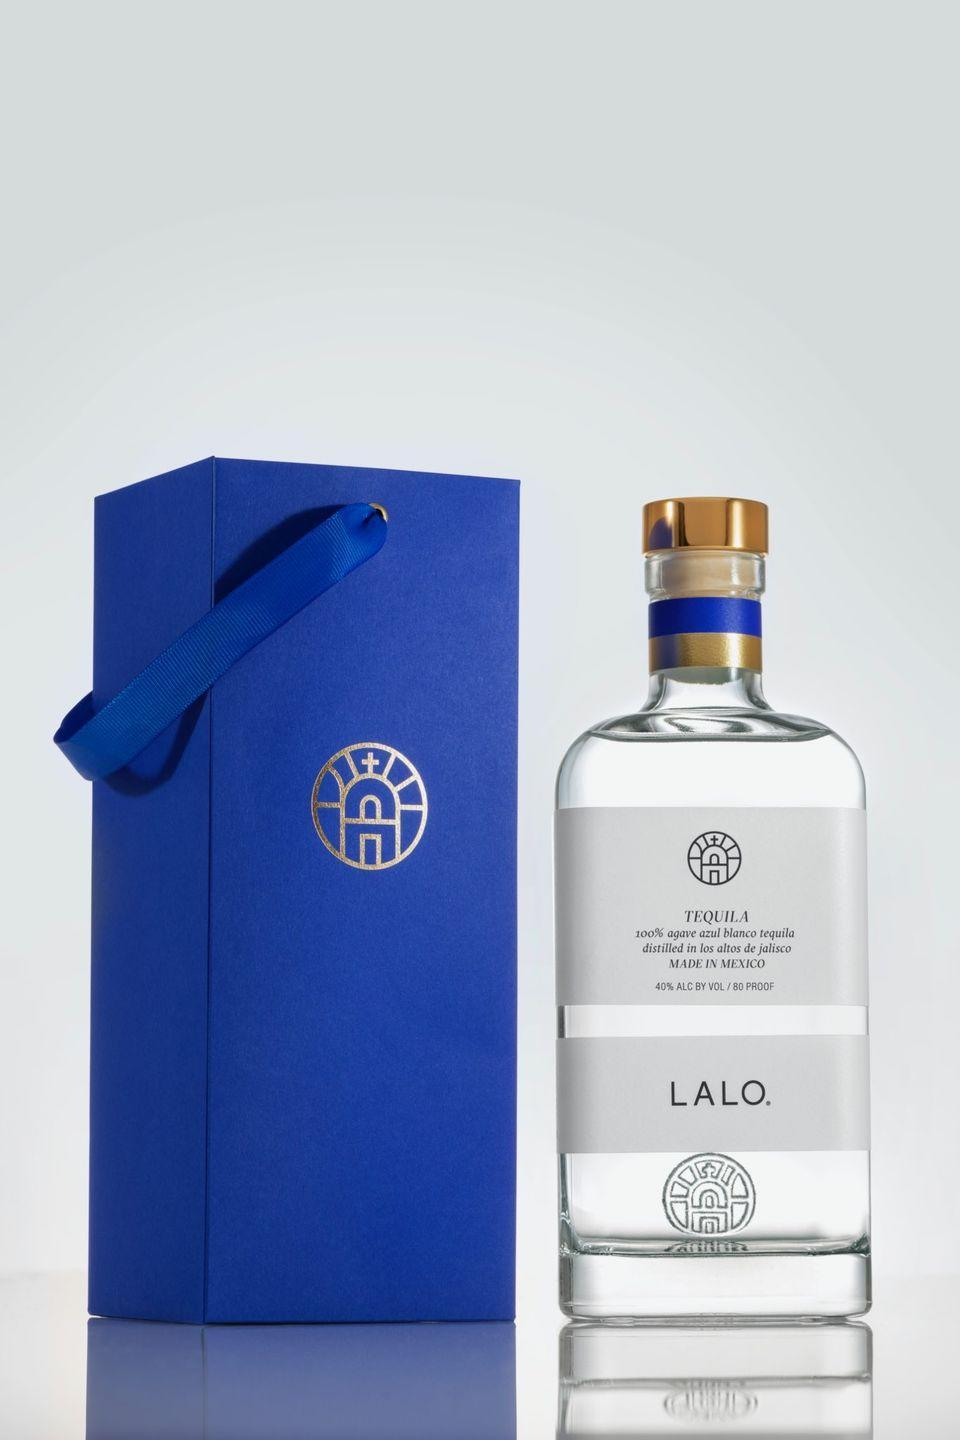 "<p>LALO tequila is named after Eduardo ""Lalo"" González, who was given the nickname by his grandfather, Don Julio González. Yup, <em>that </em>Don Julio. This pure, blanco tequila is made by Eduardo and his friend Davíd and has notes of cooked agave, sweet potato, cinnamon, and a hint of dulce de leche<em>.</em></p><p><a class=""link rapid-noclick-resp"" href=""https://shoplalospirits.com/"" rel=""nofollow noopener"" target=""_blank"" data-ylk=""slk:BUY NOW"">BUY NOW</a> <strong><em>$53, shoplalospirits.com</em></strong></p>"